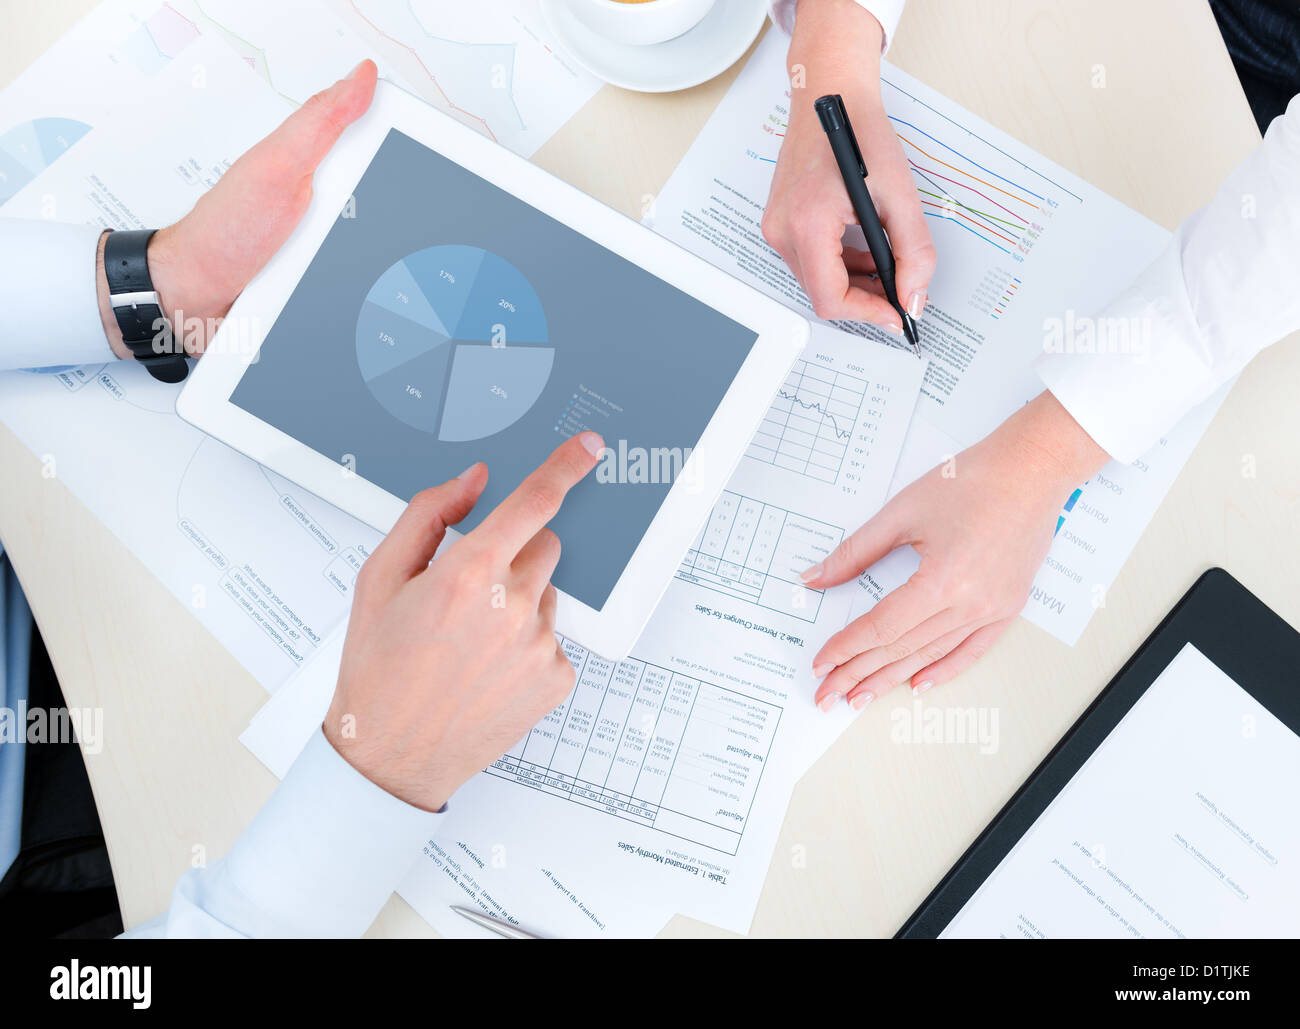 Business people developing a business project and analyzing market data information on a modern digital tablet computer. - Stock Image